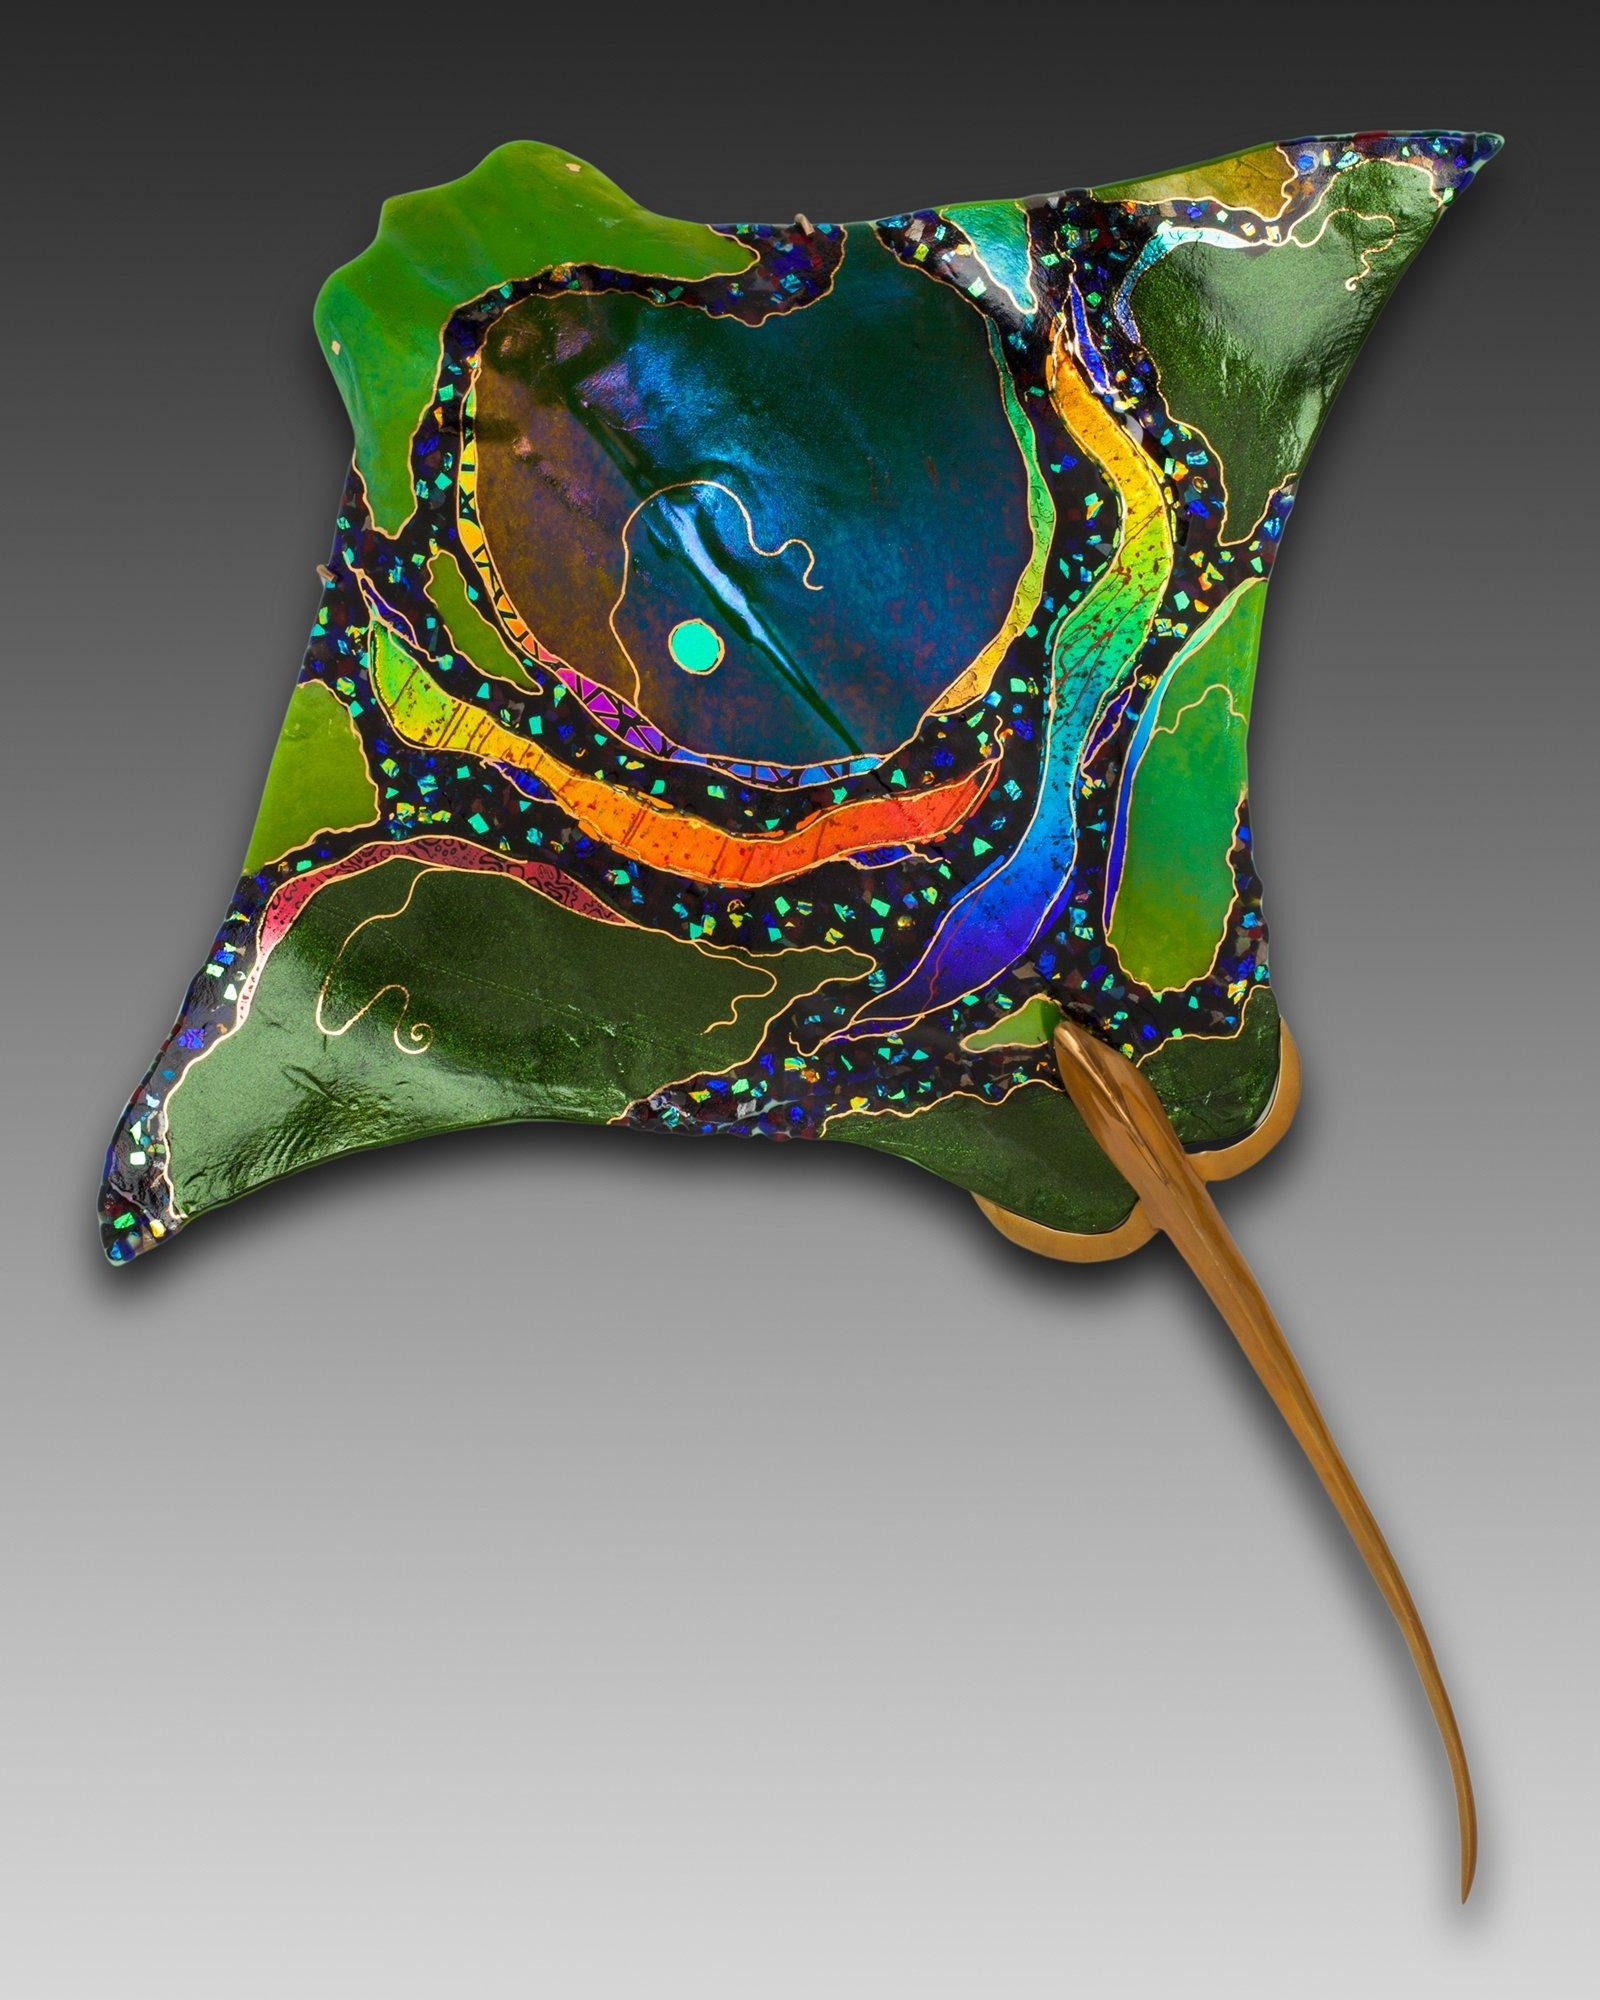 Glass Wall Artnorth American Artists | Artful Home In Fused Glass Fish Wall Art (View 8 of 20)